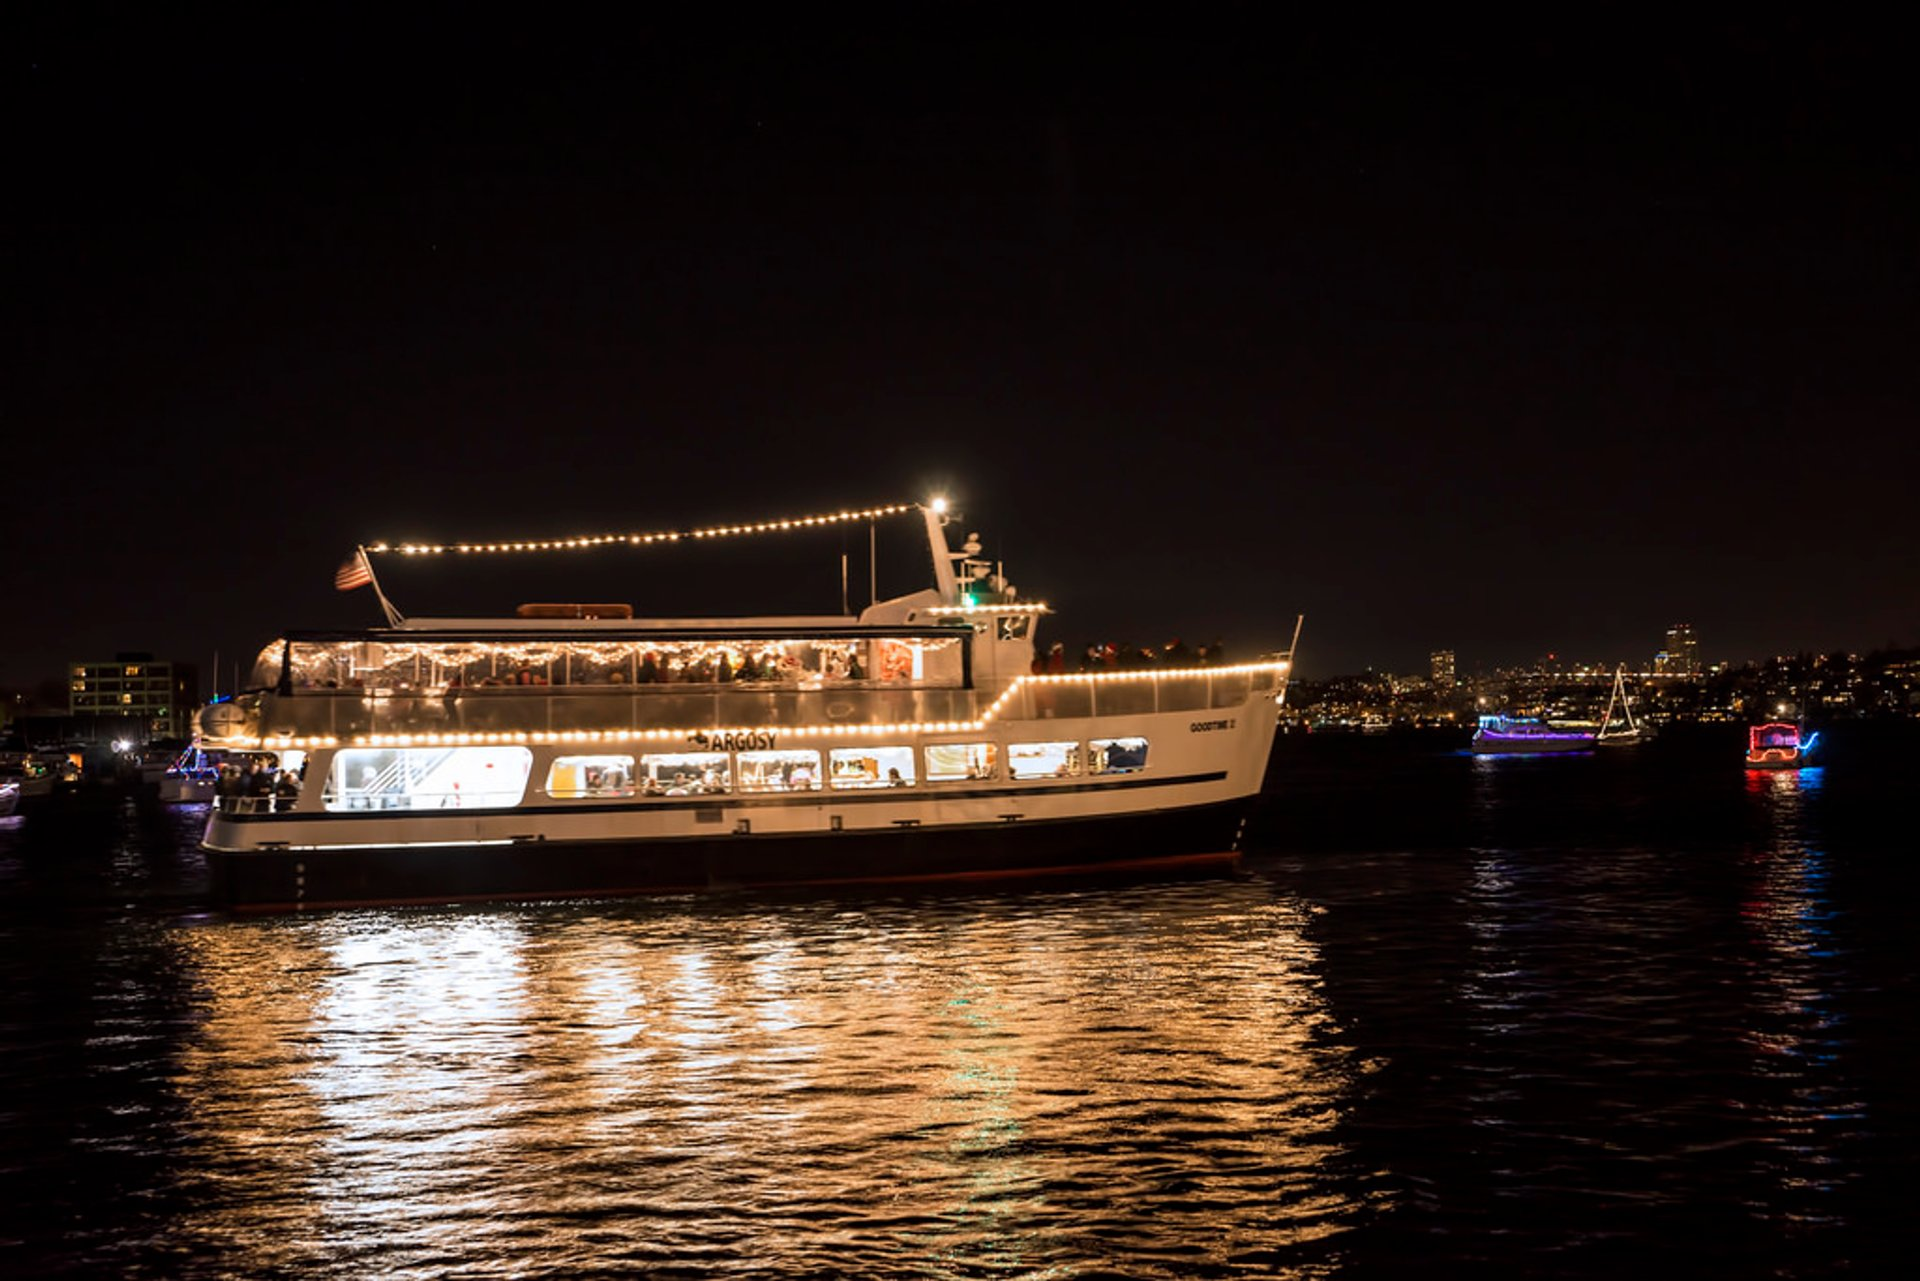 Best time to see Christmas Ship Festival in Seattle 2019